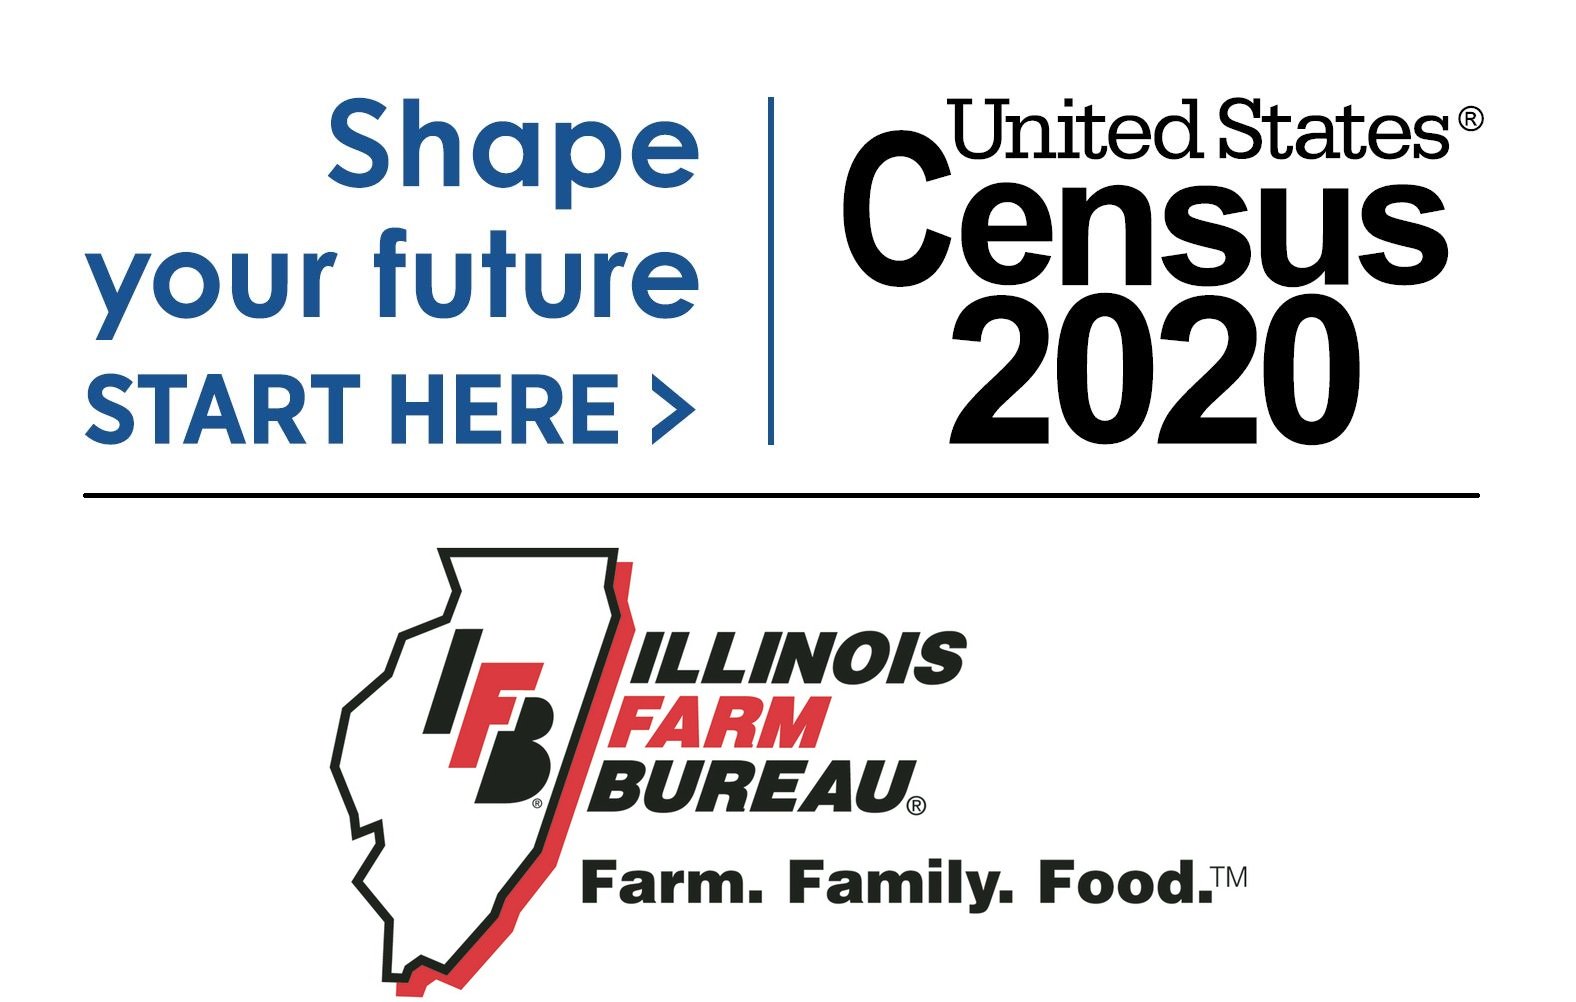 County Farm Bureaus to help with online census count